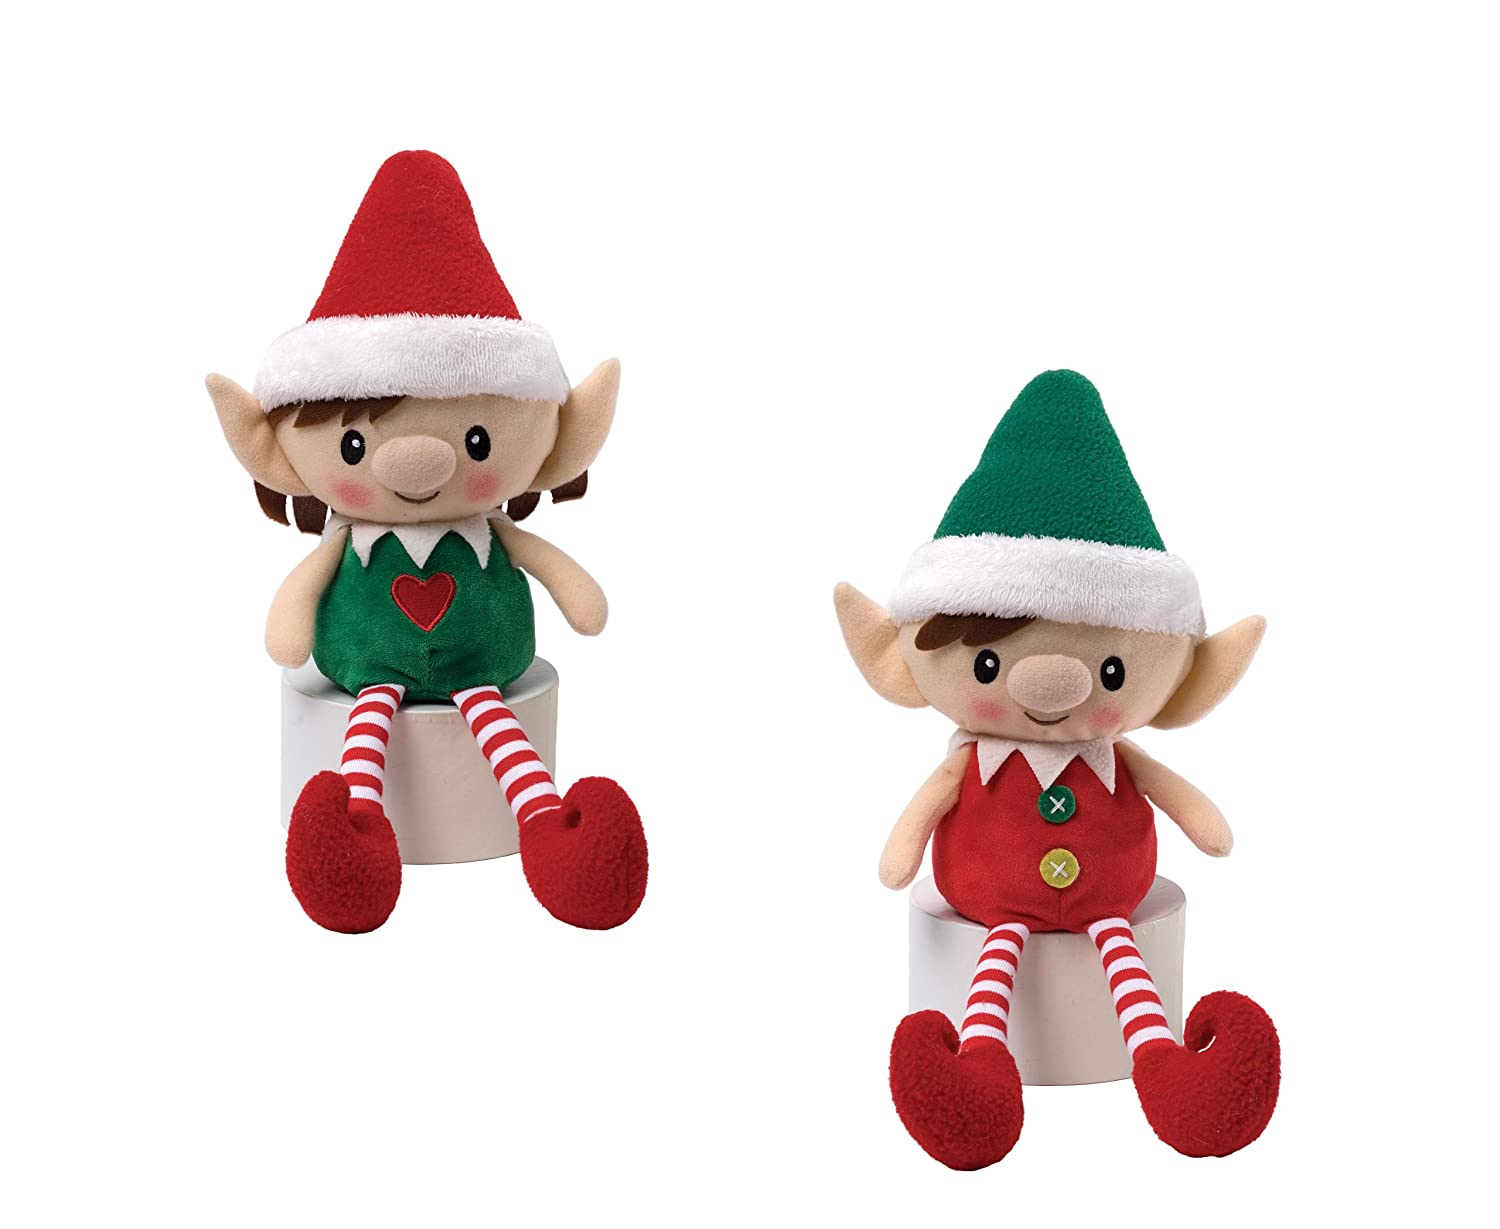 Christmas Peppermint Elves Doll (Boy with Green Hat): Amazon.co.uk ...